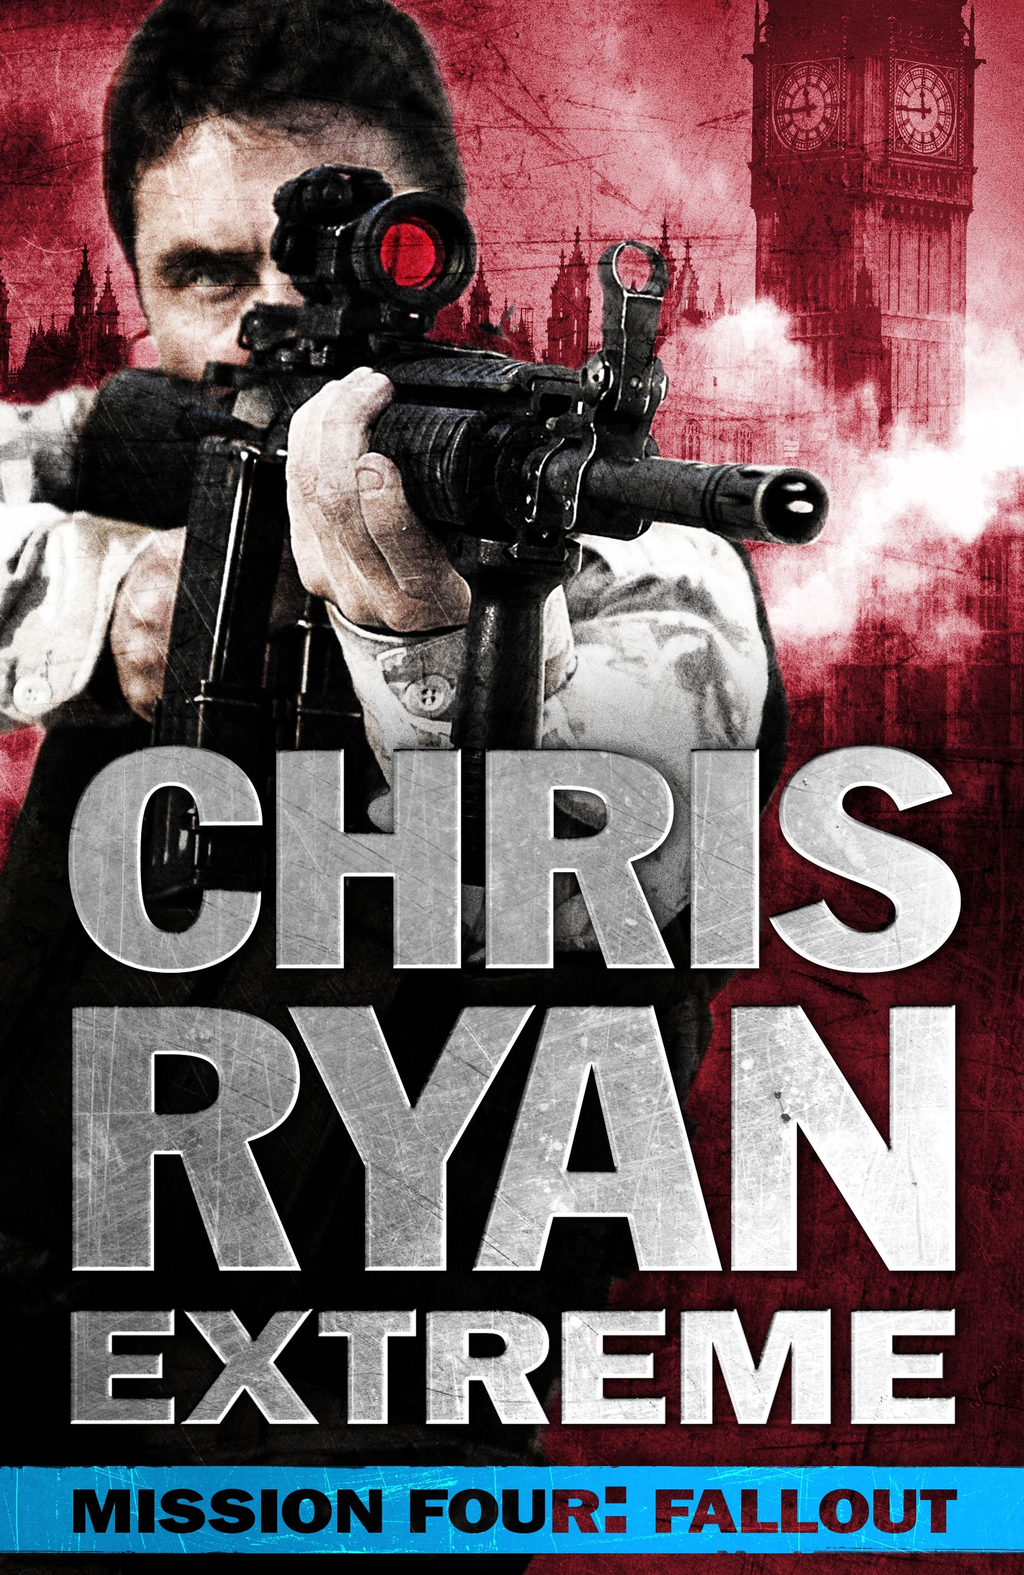 Mission Four: Fallout Chris Ryan Extreme: Series 1